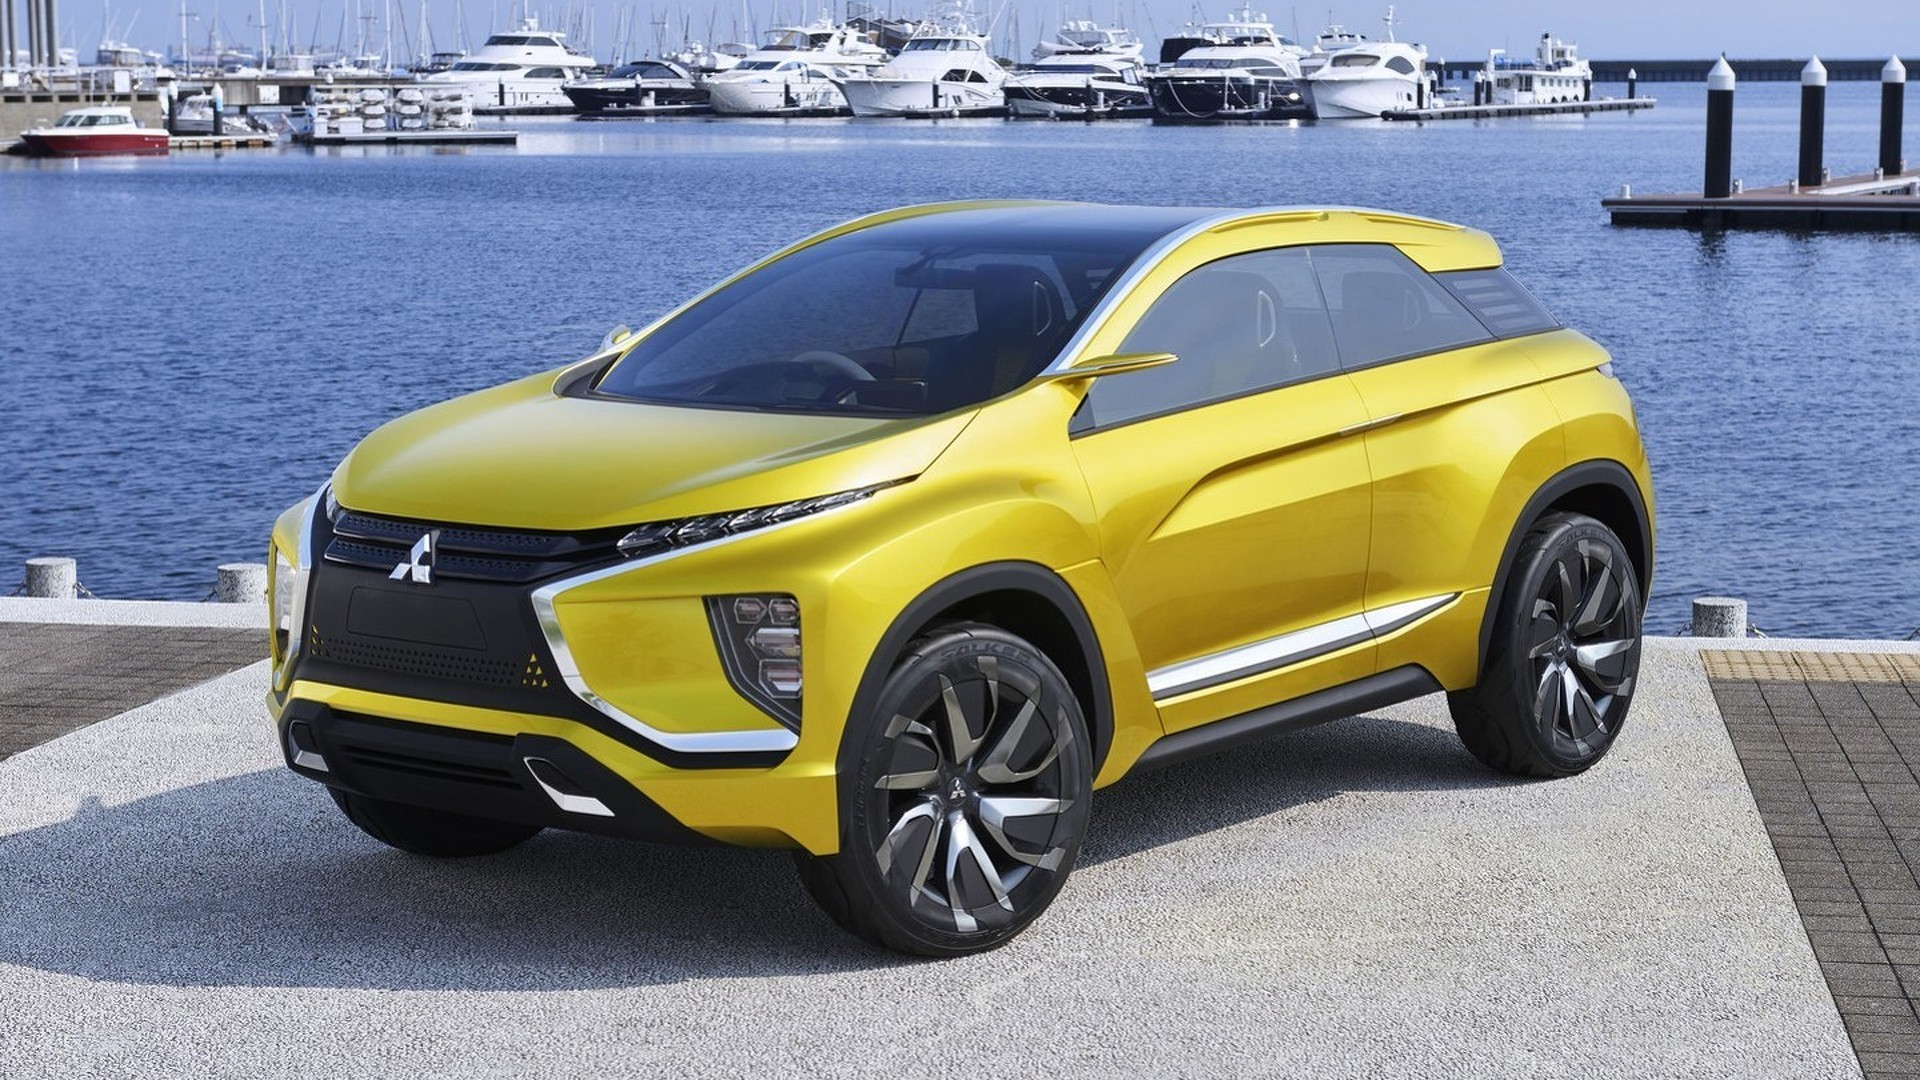 Mitsubishi S New Cuv Will Debut In Geneva Go On Sale Next Year